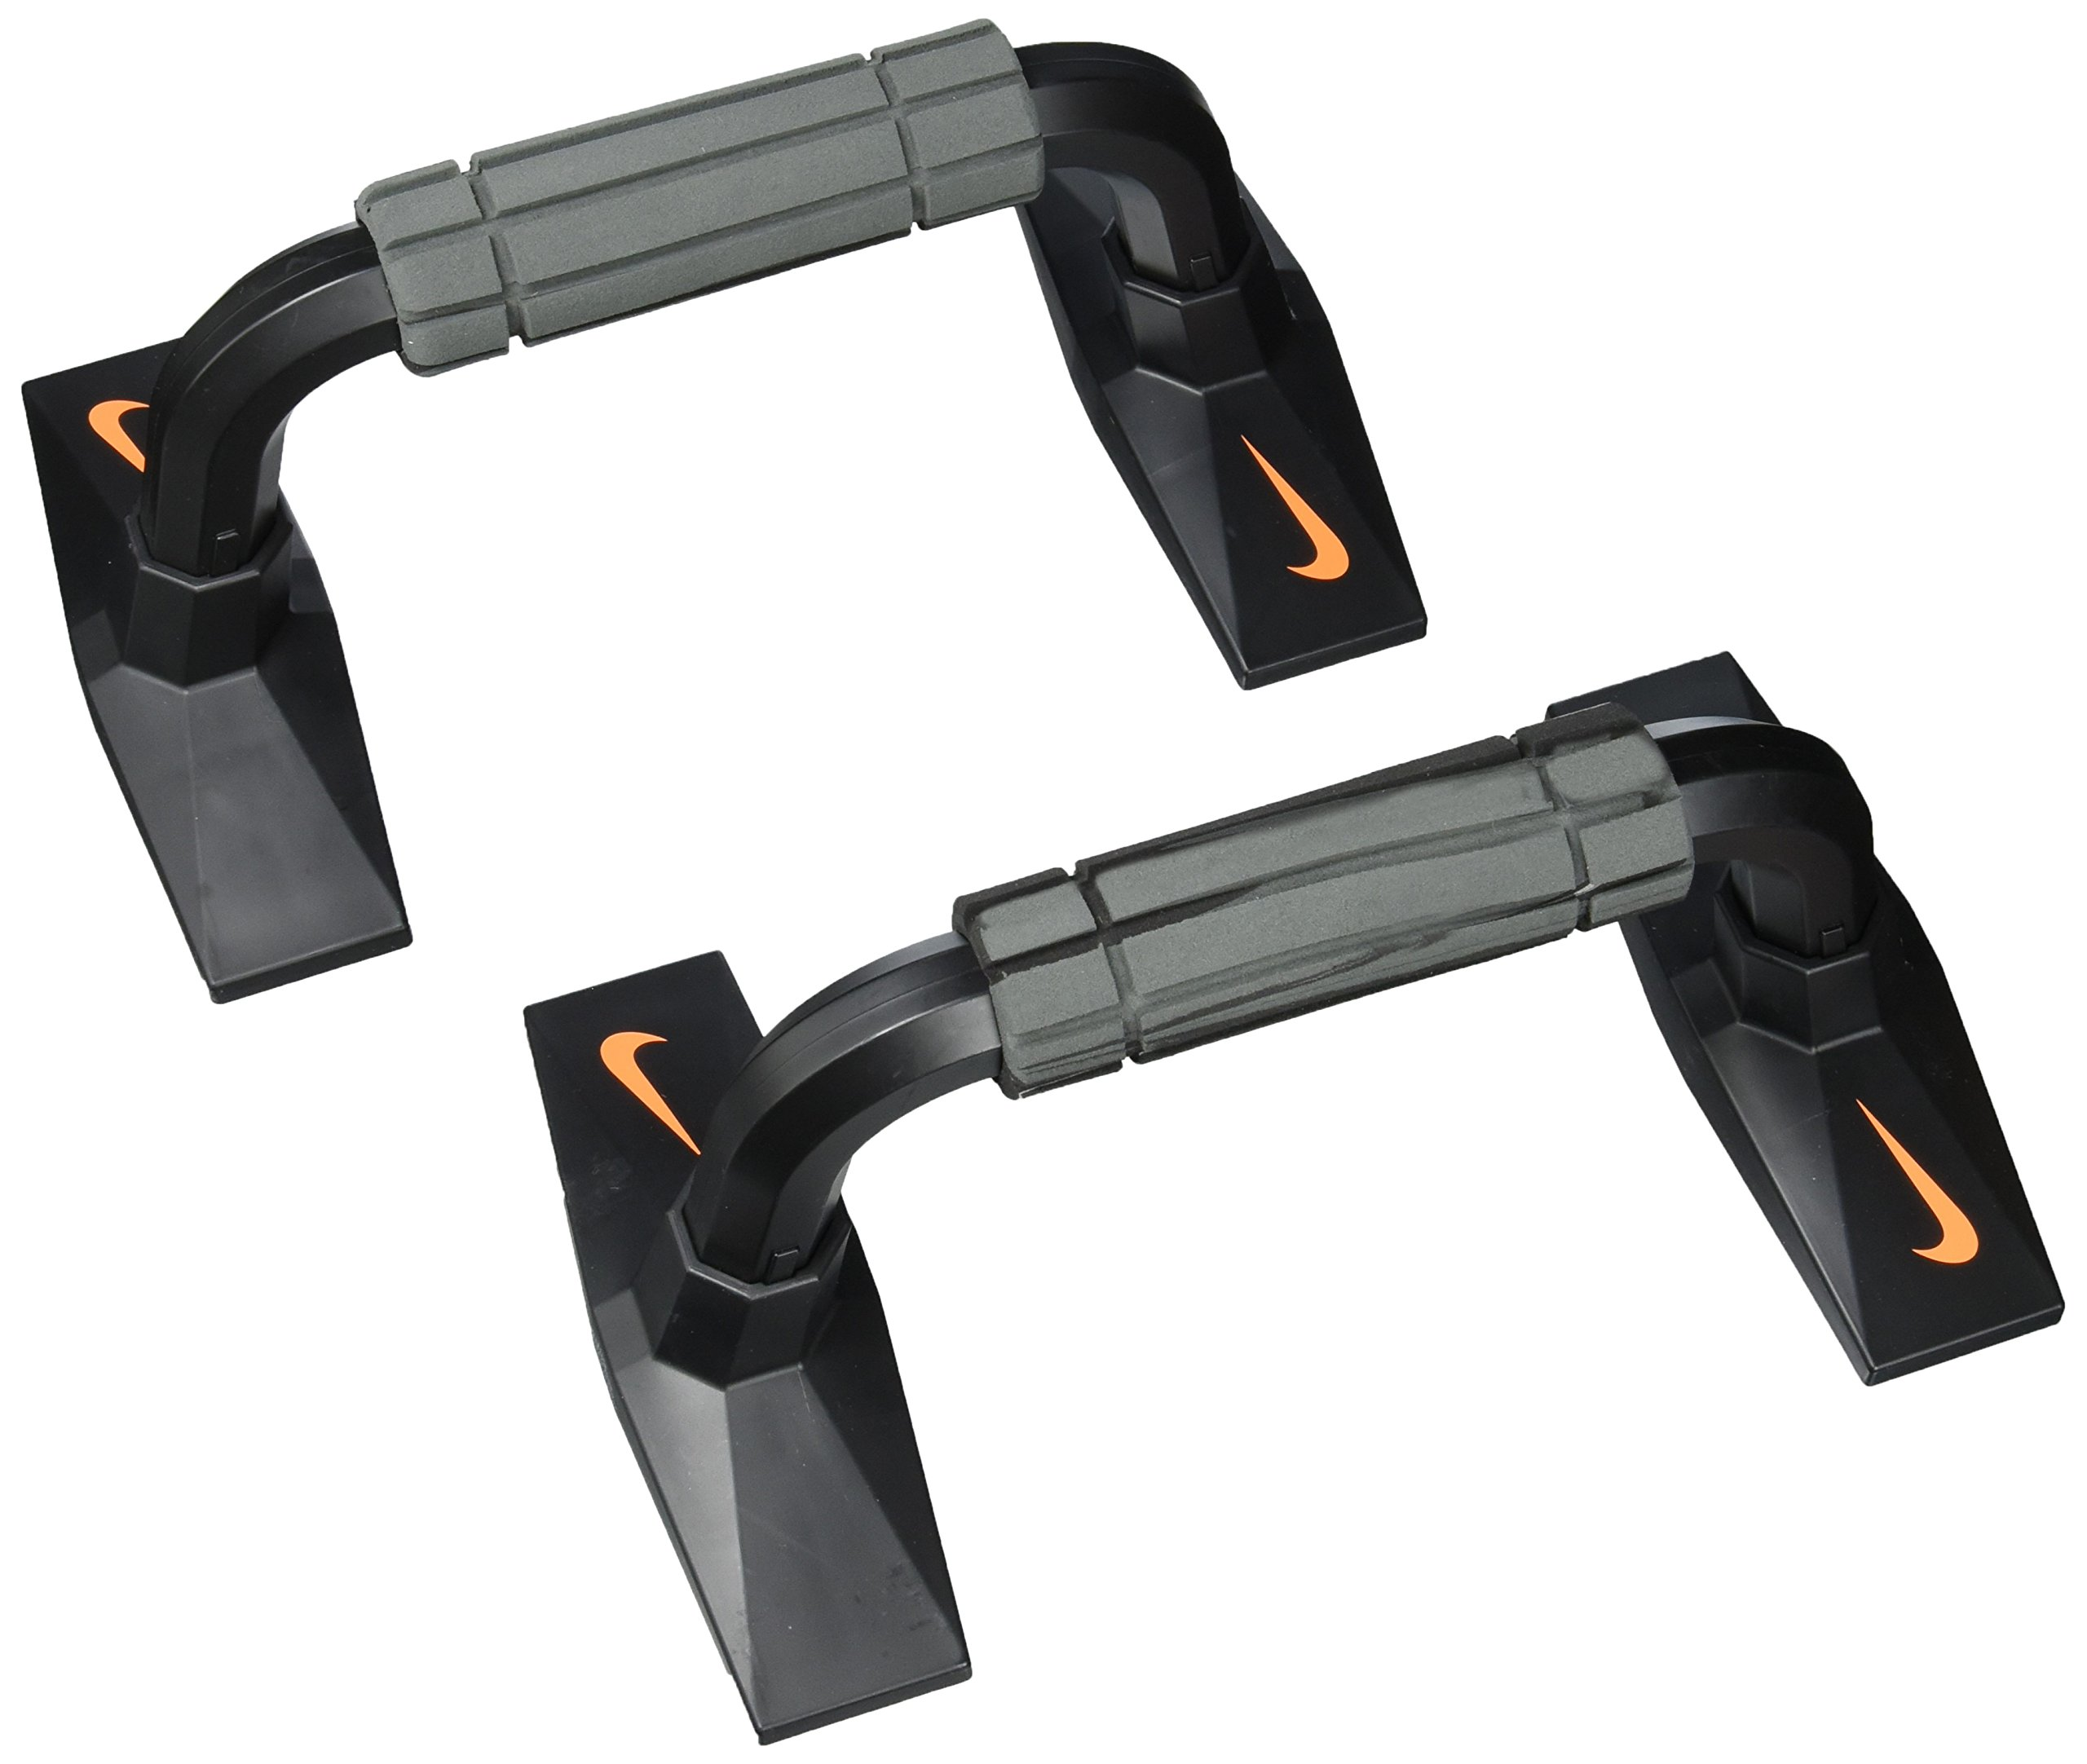 Nike Push Up Grips 2.0 (Grey/Black/Bright Citrus)